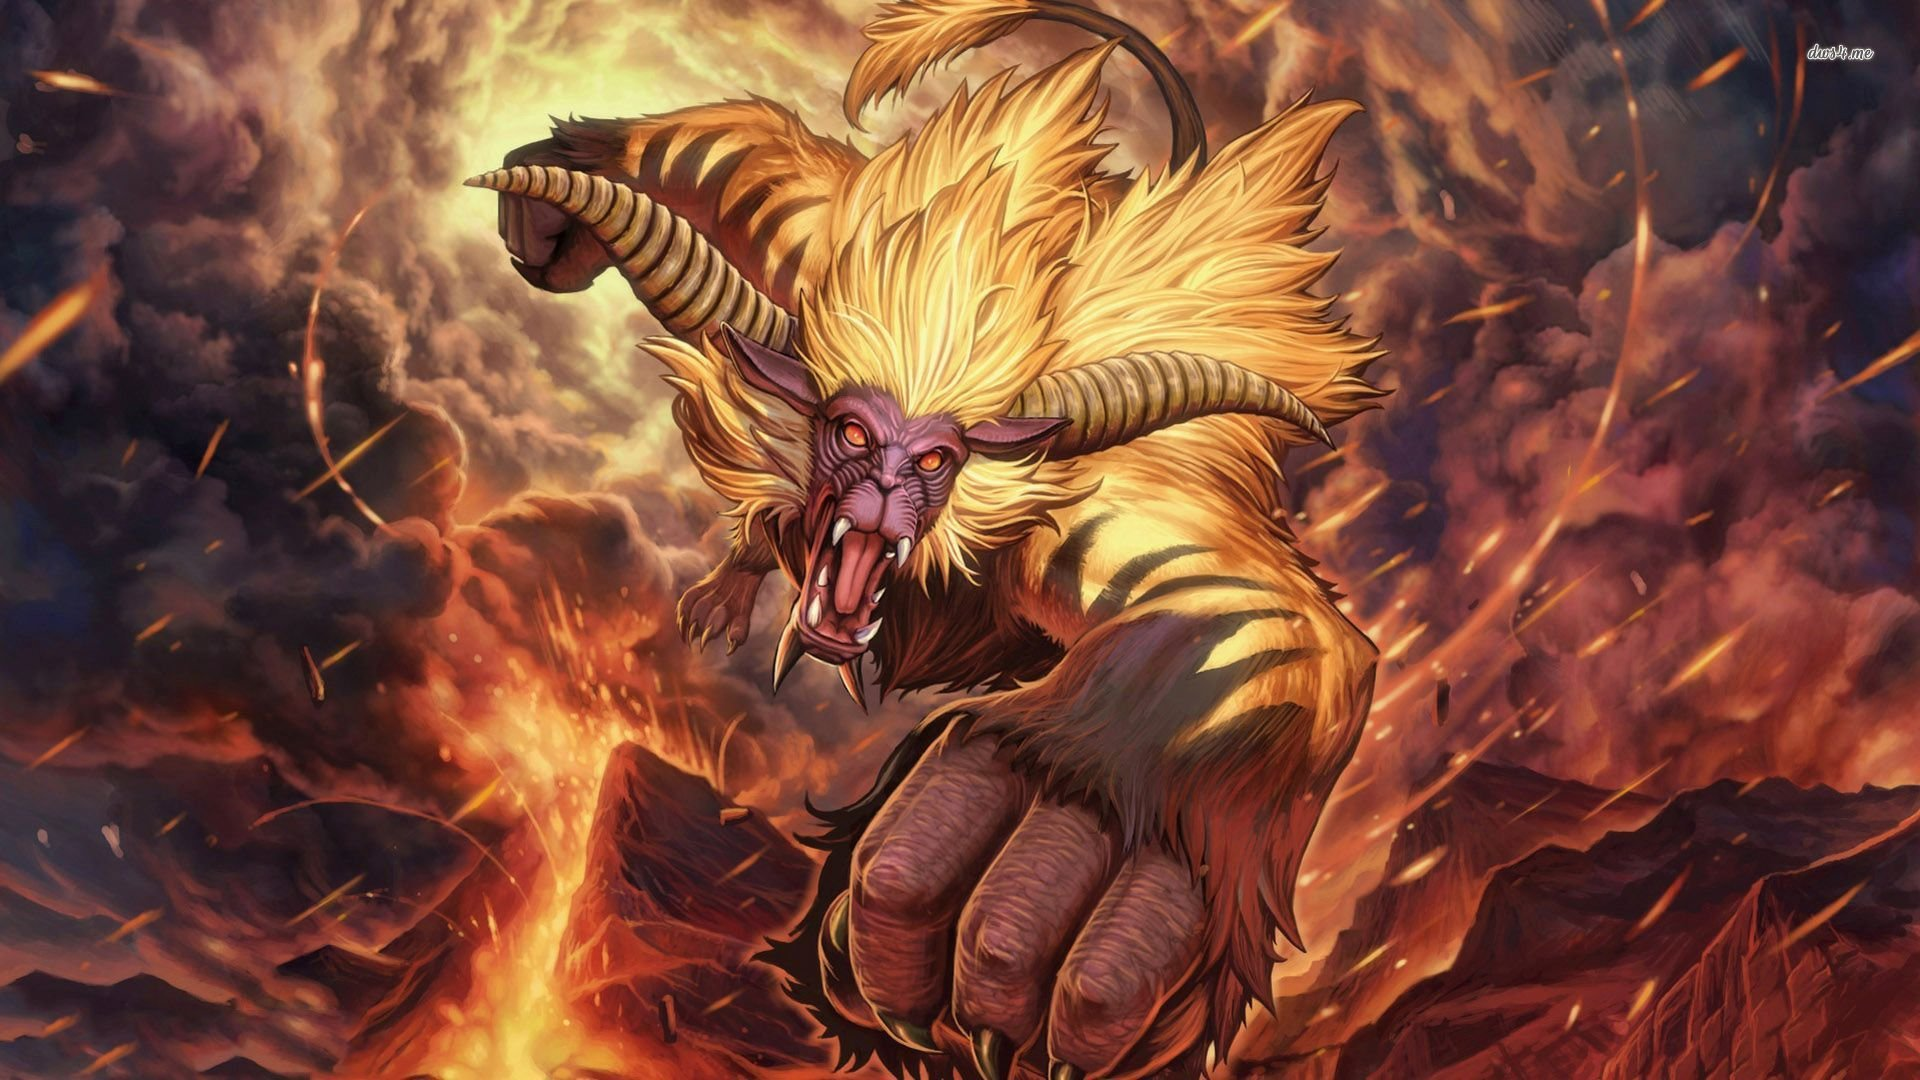 From What Ive Read Everyone Hates Rajang Why FANDOM 1920x1080